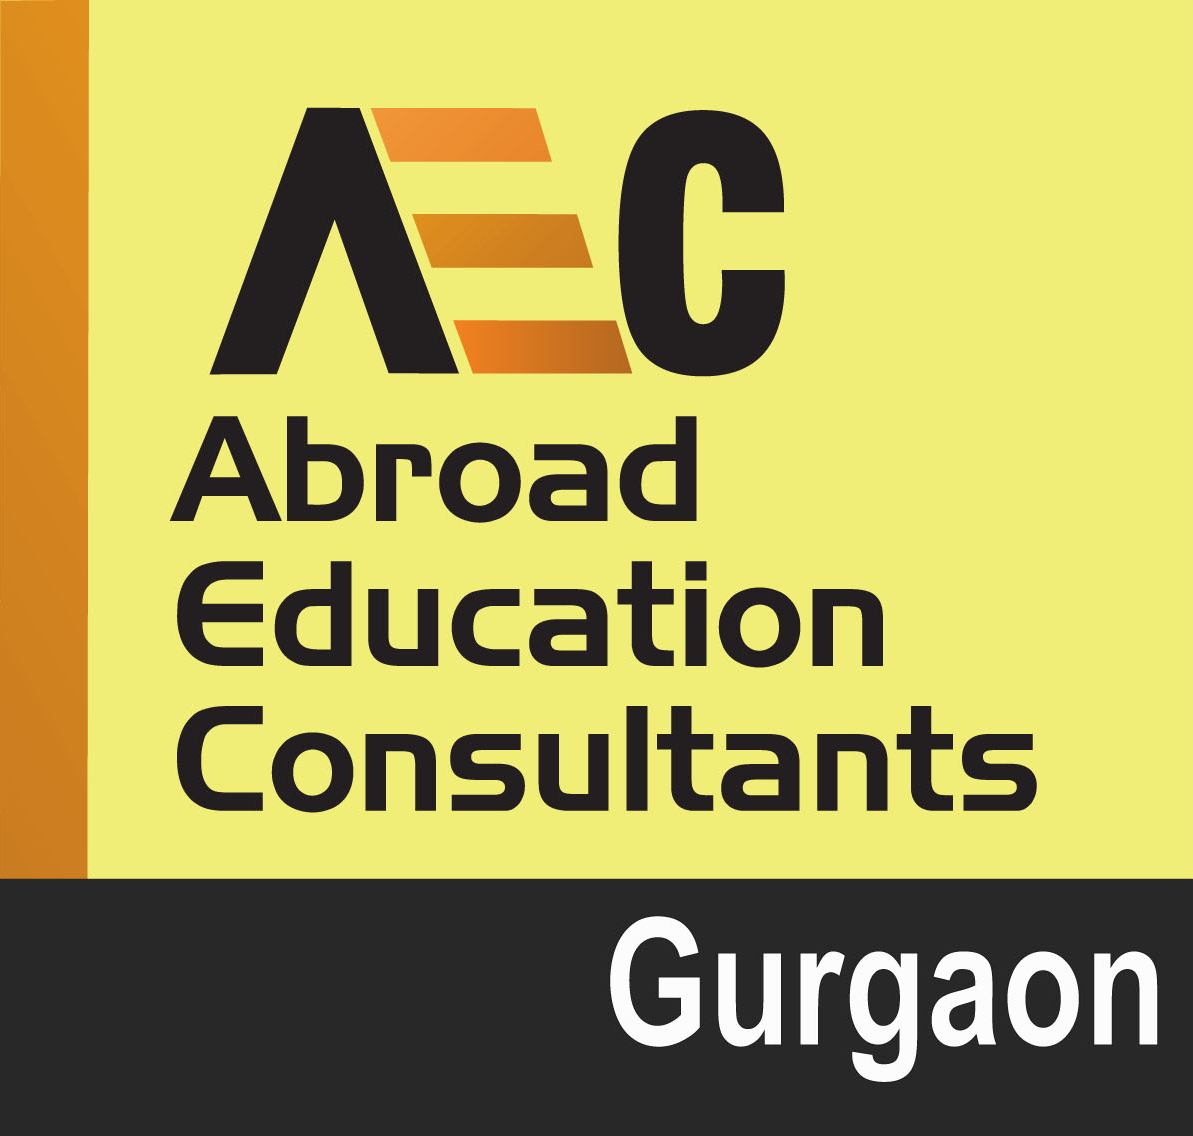 AEC Abroad Education Consultant is an education consultancy assisting students who wish to study abroad. We help you to secure an education loan for your study in top universities of uk, australia, usa, canada, singapore, new zealand, etc. AEC experts help you to make your study abroad dream come true, please contact AEC gurgaon at 8802888895